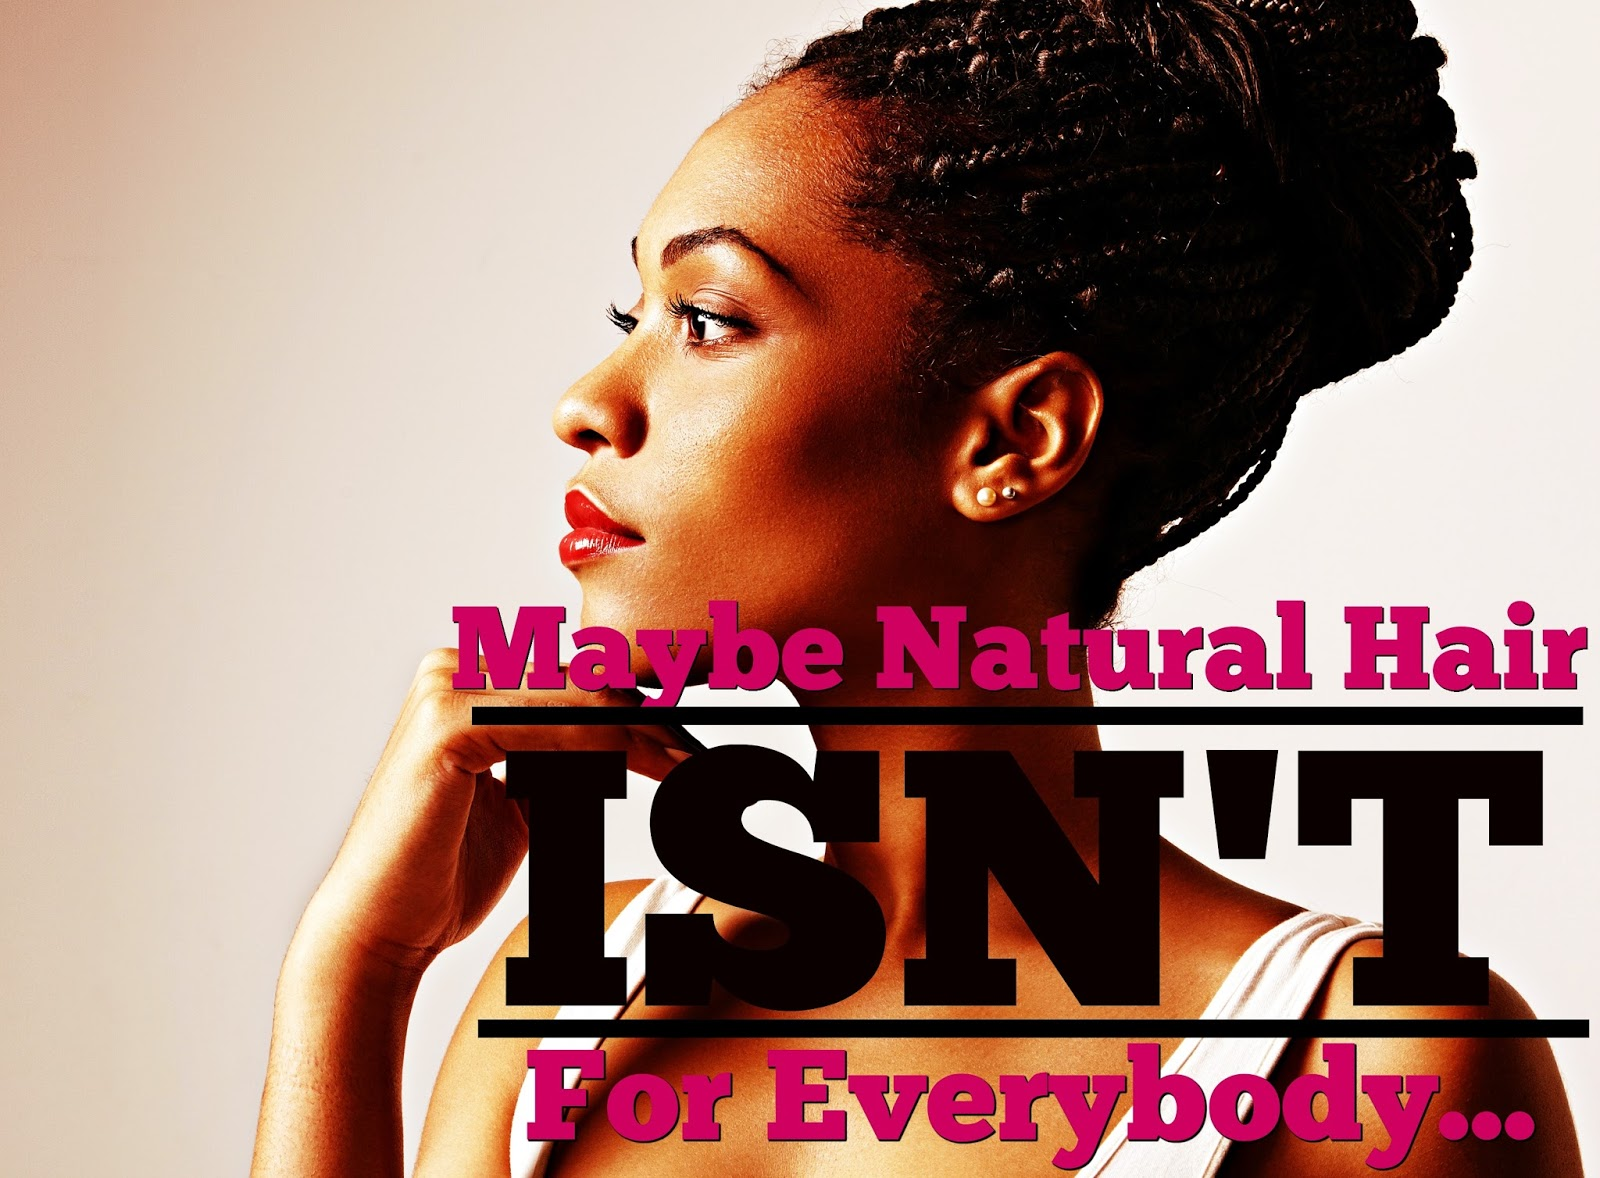 Maybe Natural hair ISN'T for everybody...